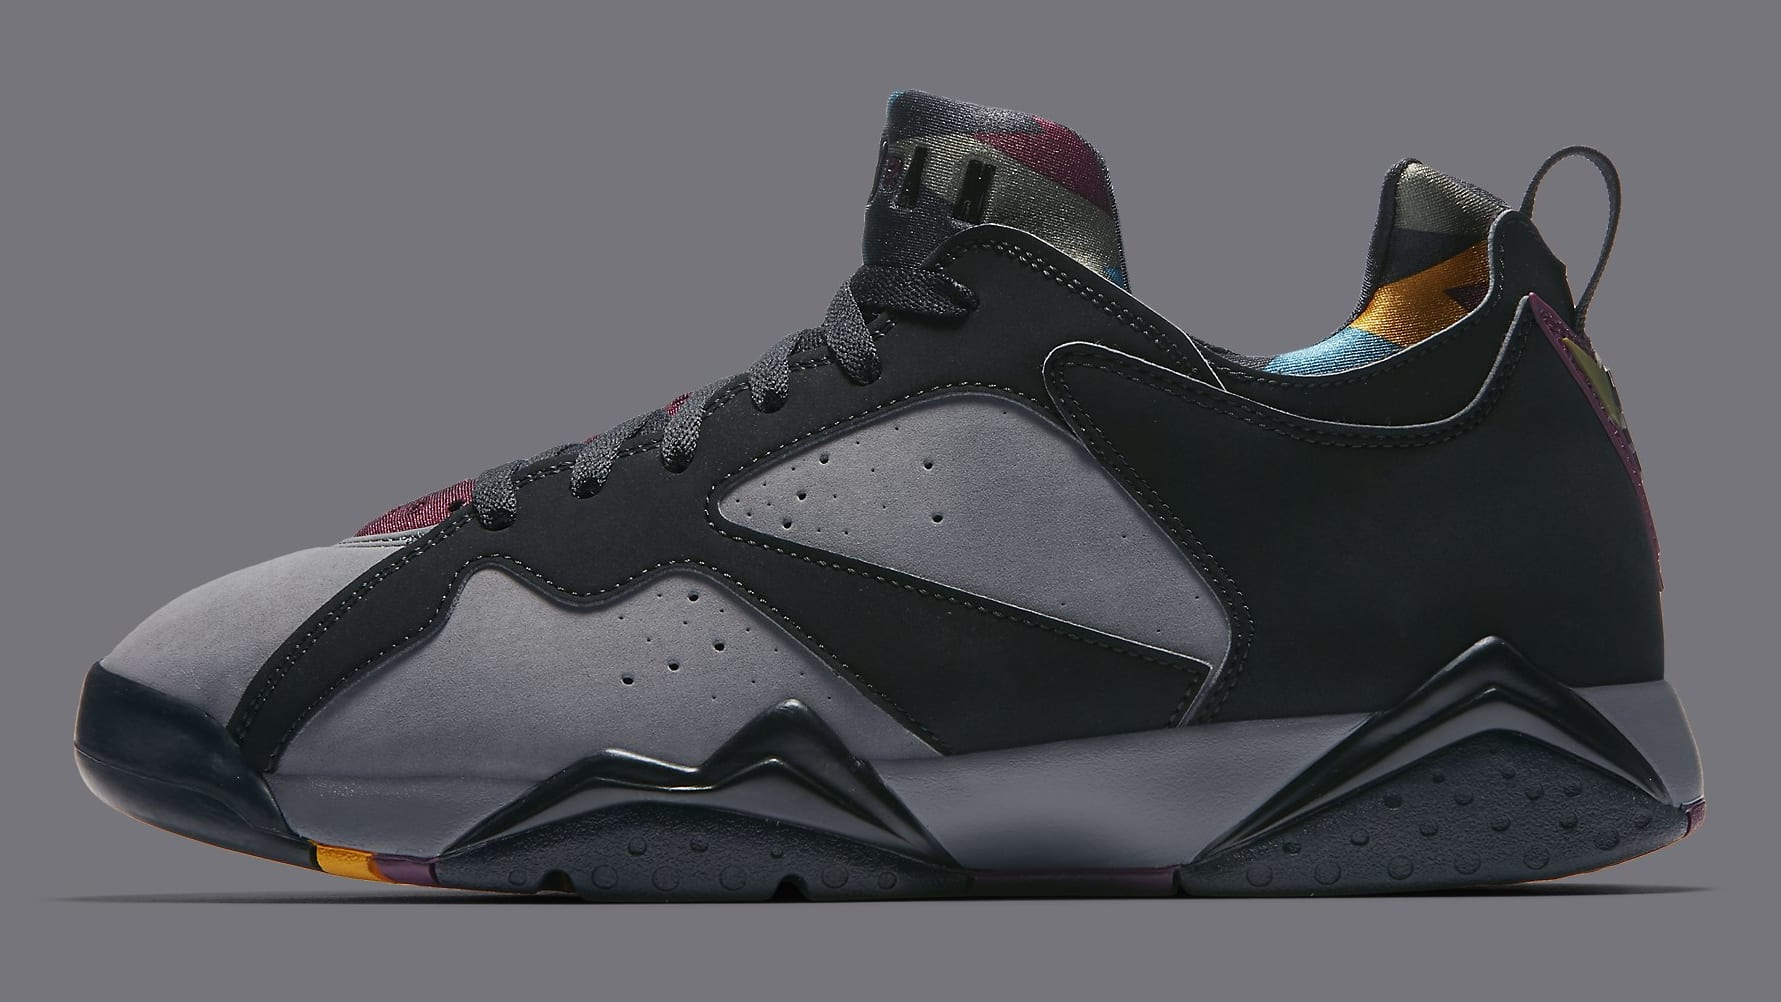 promo code 599a7 f2581 Air Jordan 7 VII Low Bordeaux Release date AR4422-034 Profile